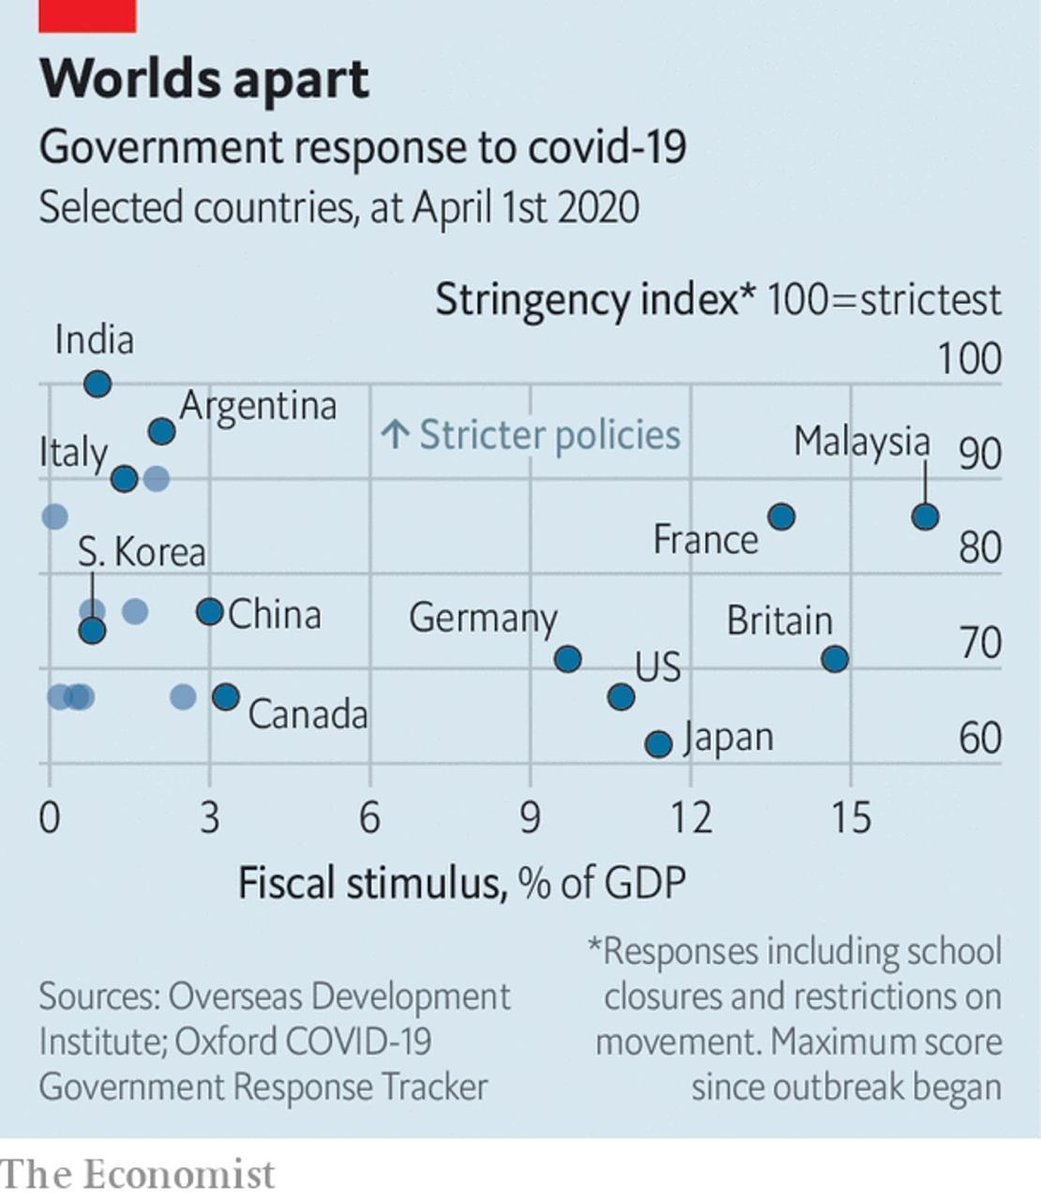 Karnvir Mundrey On Twitter Amongst All The Countries In The World India Has Adopted The Strictest Policies As Per This Chart Coronavirusindia Coronavirus Https T Co Qoafm4dbj9